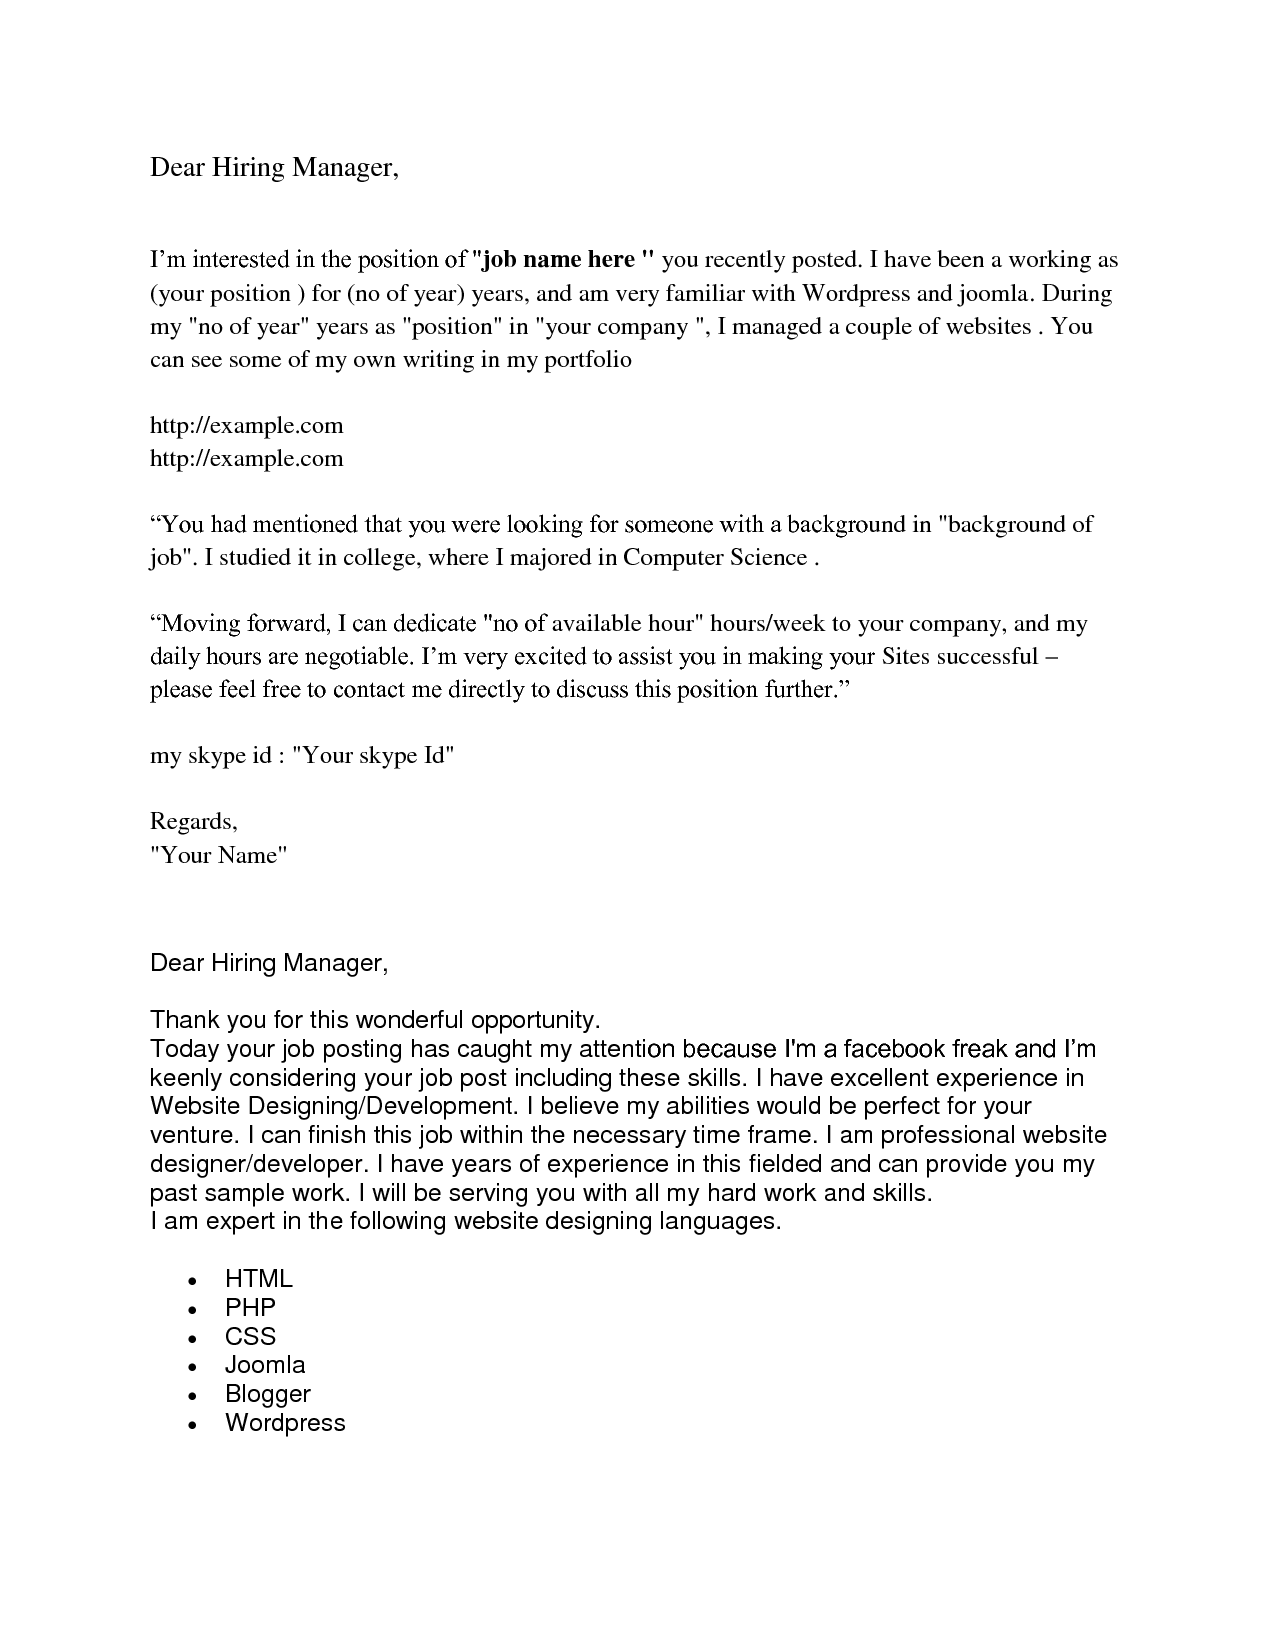 Cover Letters Example Resume Headline Industrial Engineer Letter